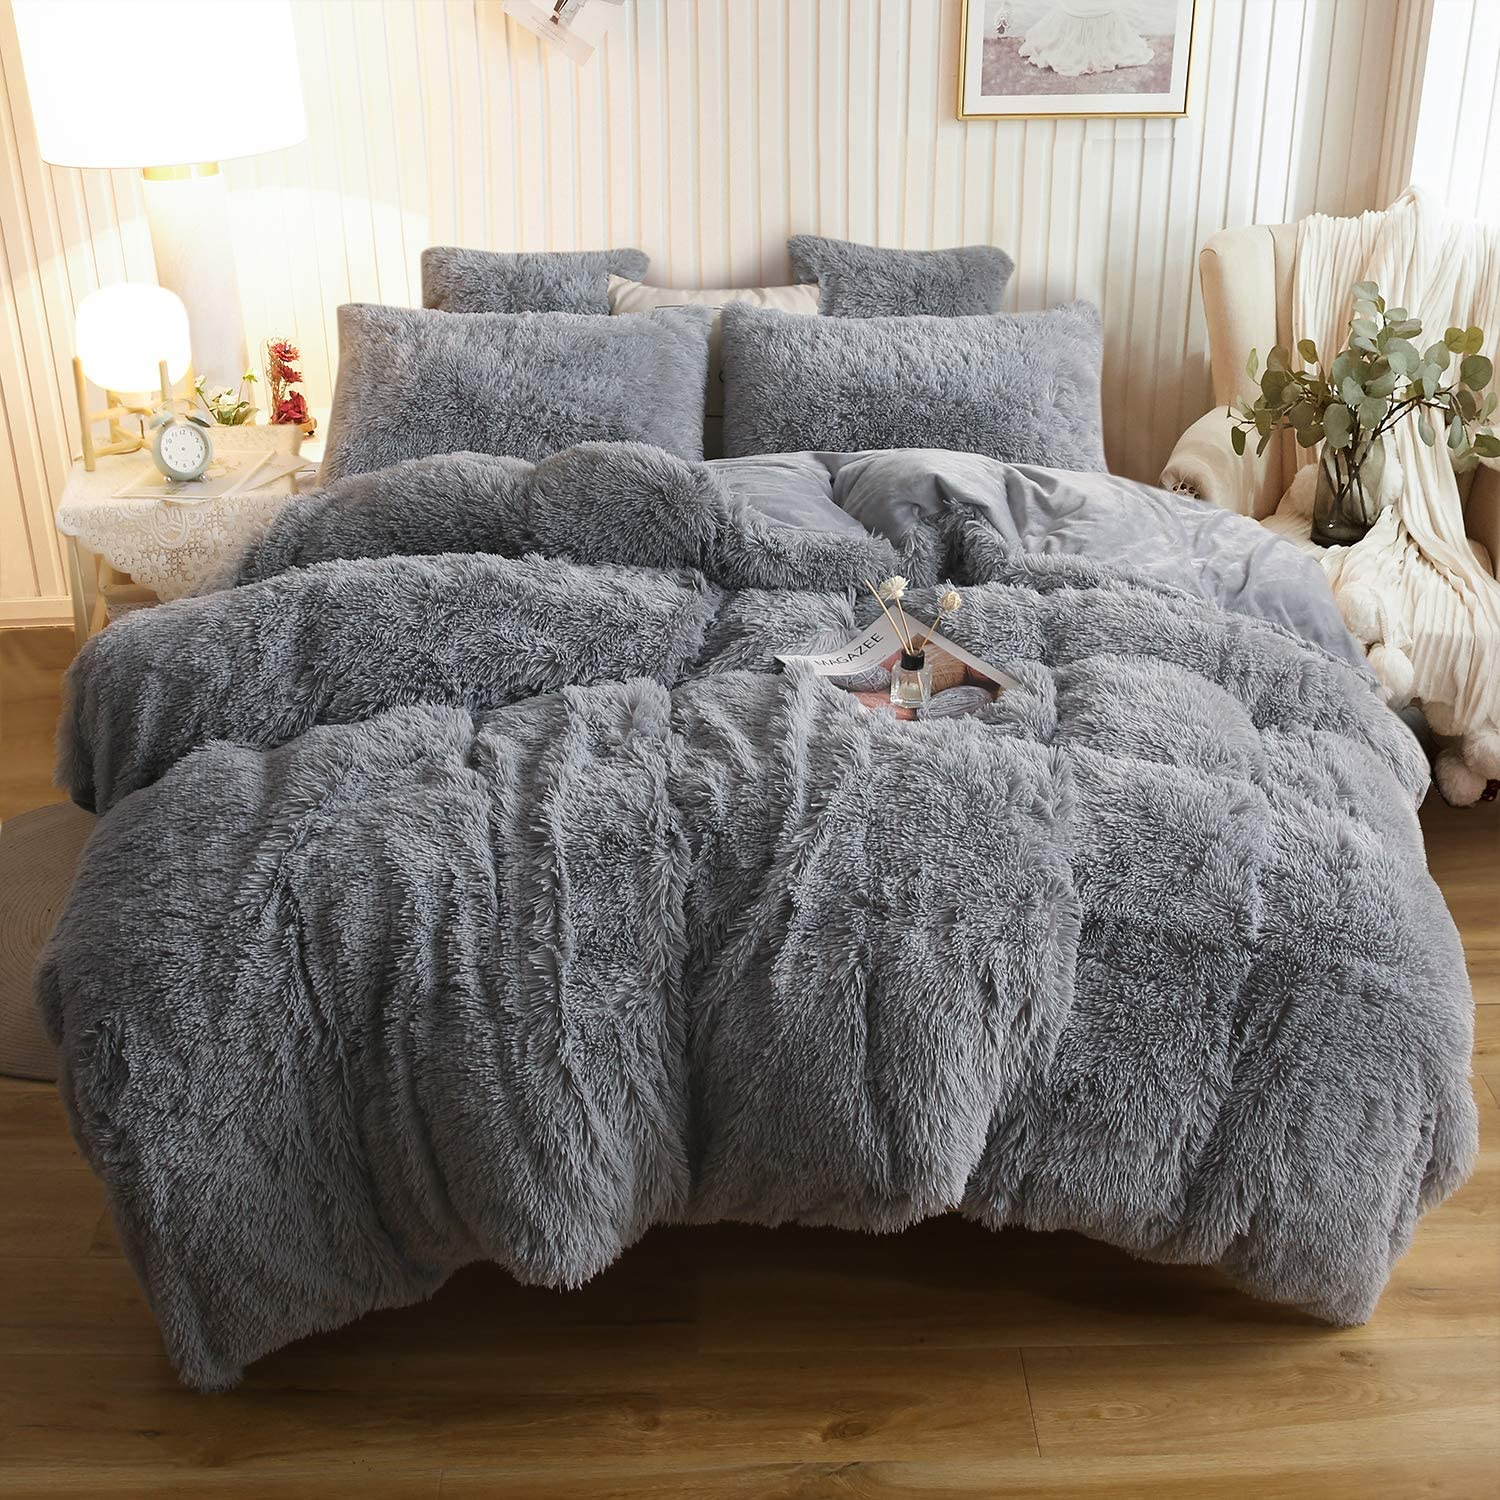 XeGe Plush Shaggy Duvet Cover Set